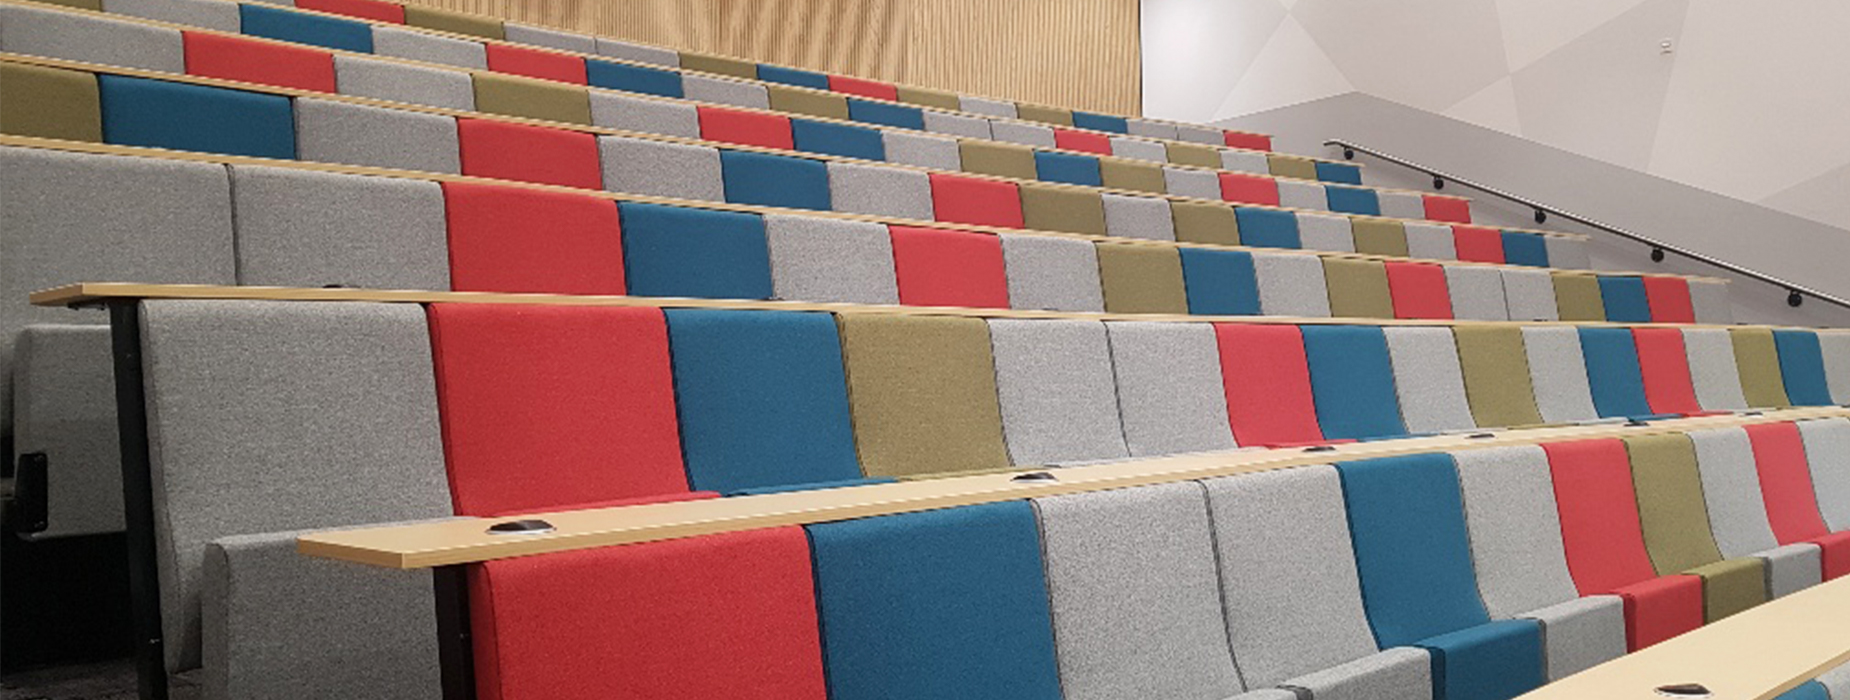 University of Kent - Business School Lecture Theatre